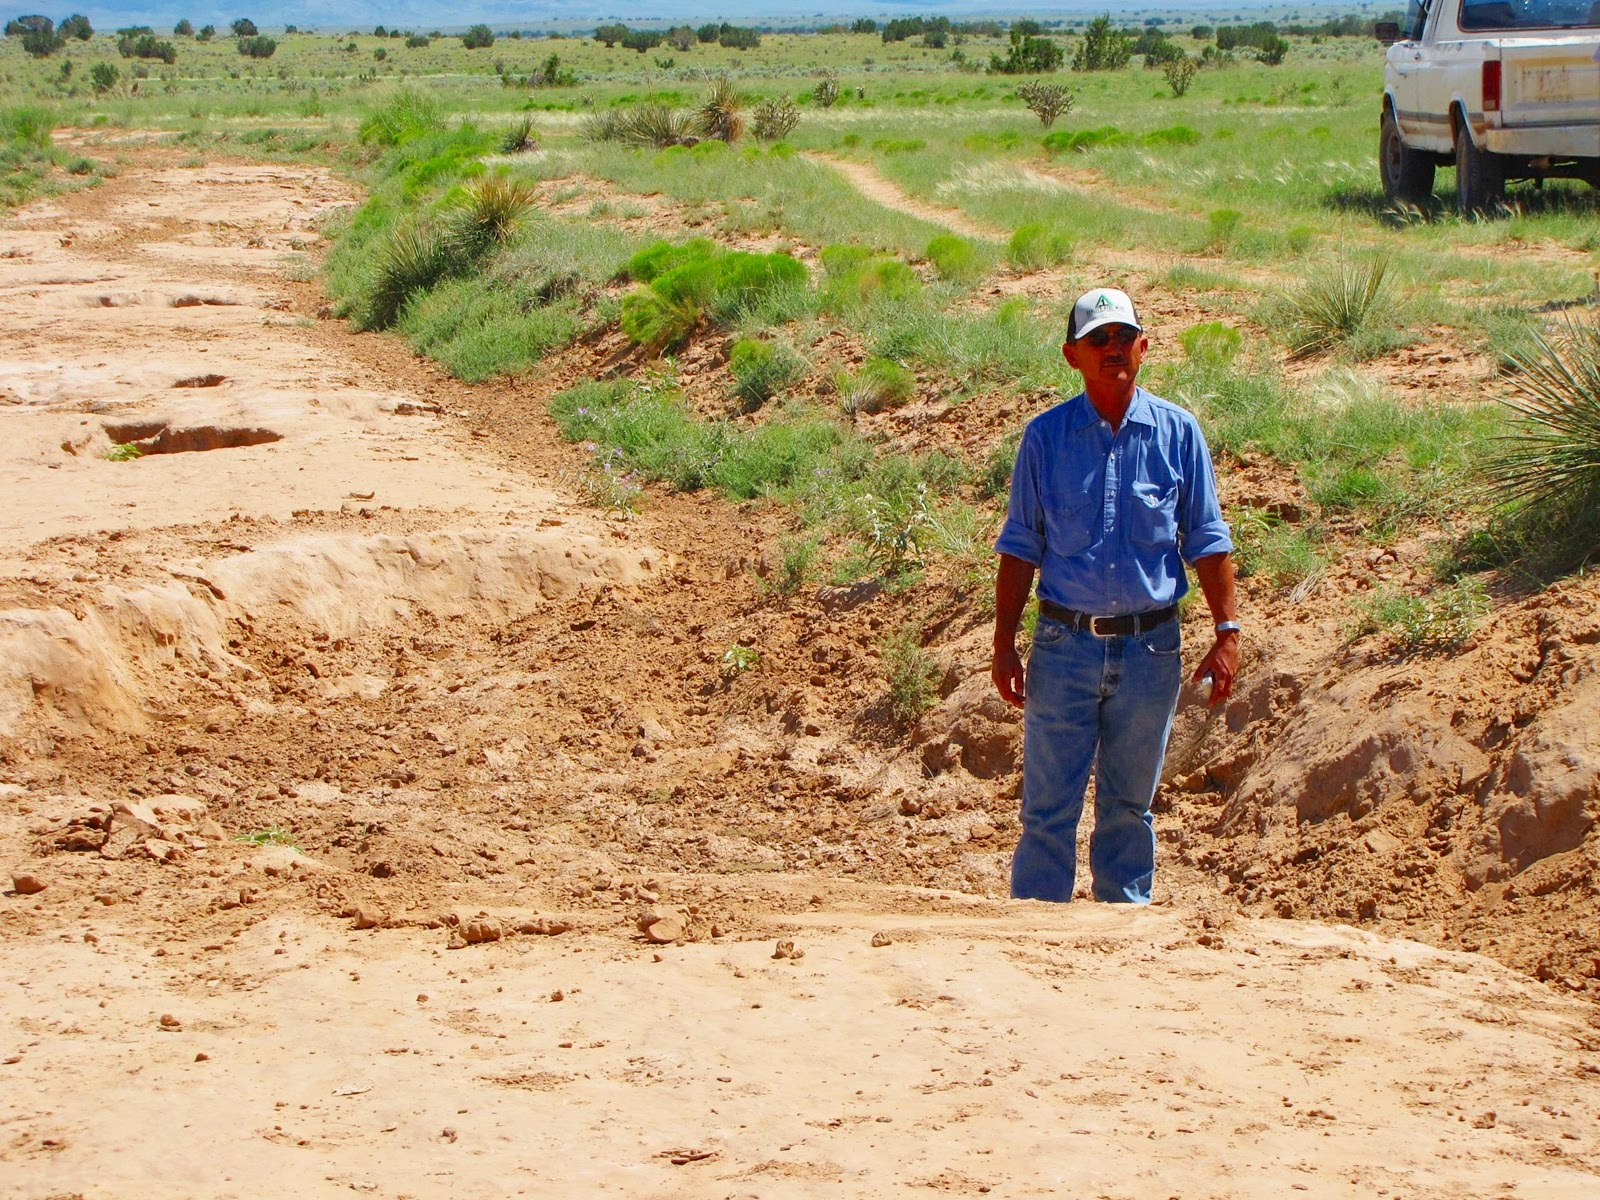 New mexico socorro county magdalena - East Of The Rio Grande Work Will Be Done On Roads 127 And 131 North Of Highway 380 Highways 179 And 135 And 129 147 County Road 63 Bosquecito Road